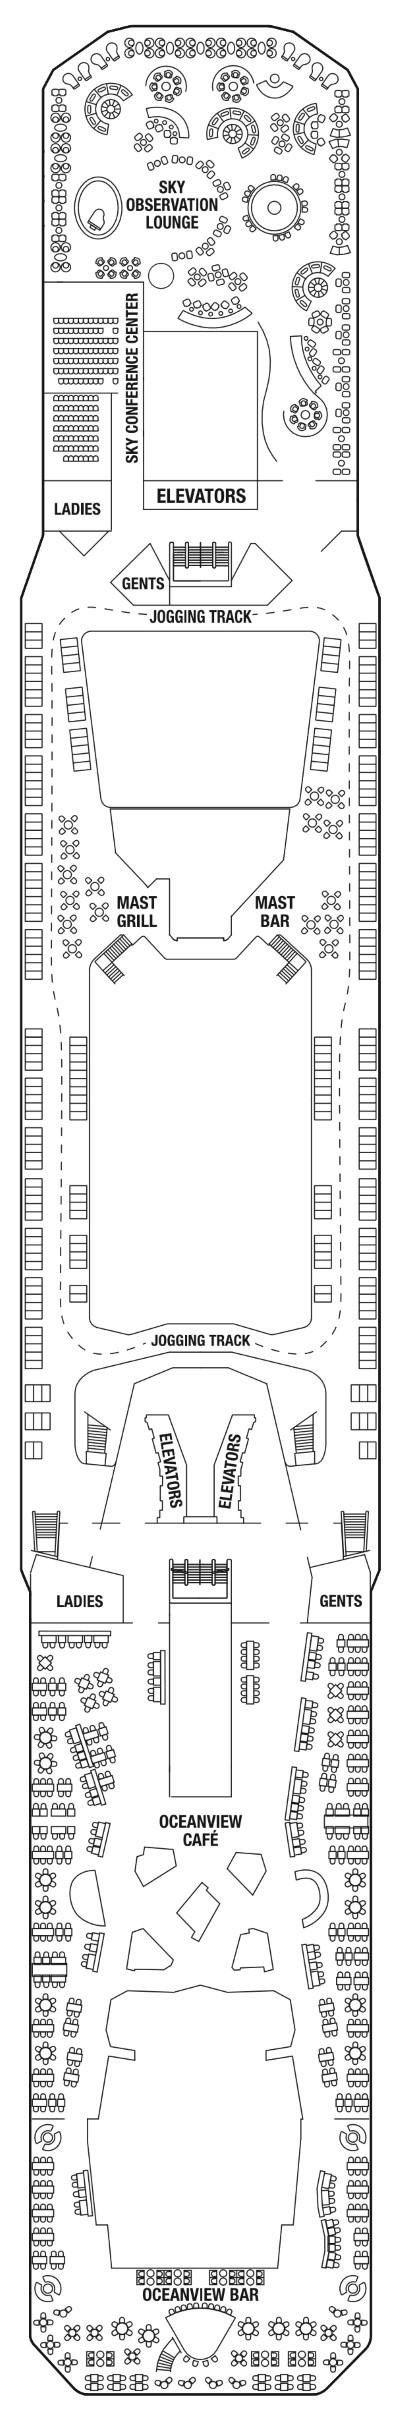 Celebrity Solstice Deck 14 layout